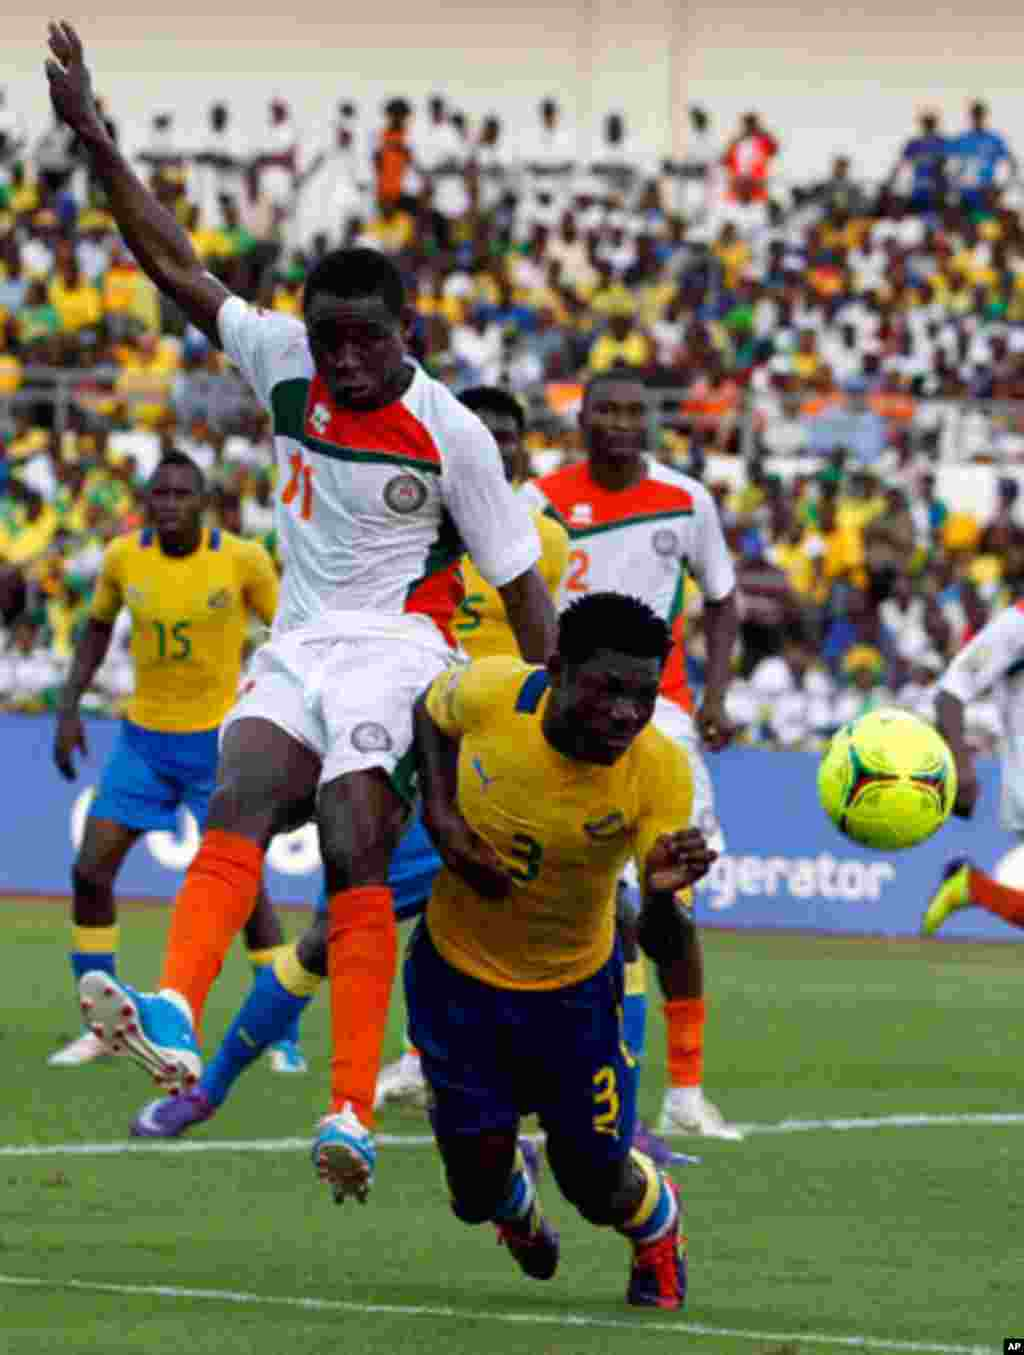 Gabon's Edmond is challenged by Niger's Issoufou during their African Cup of Nations soccer match in Libreville